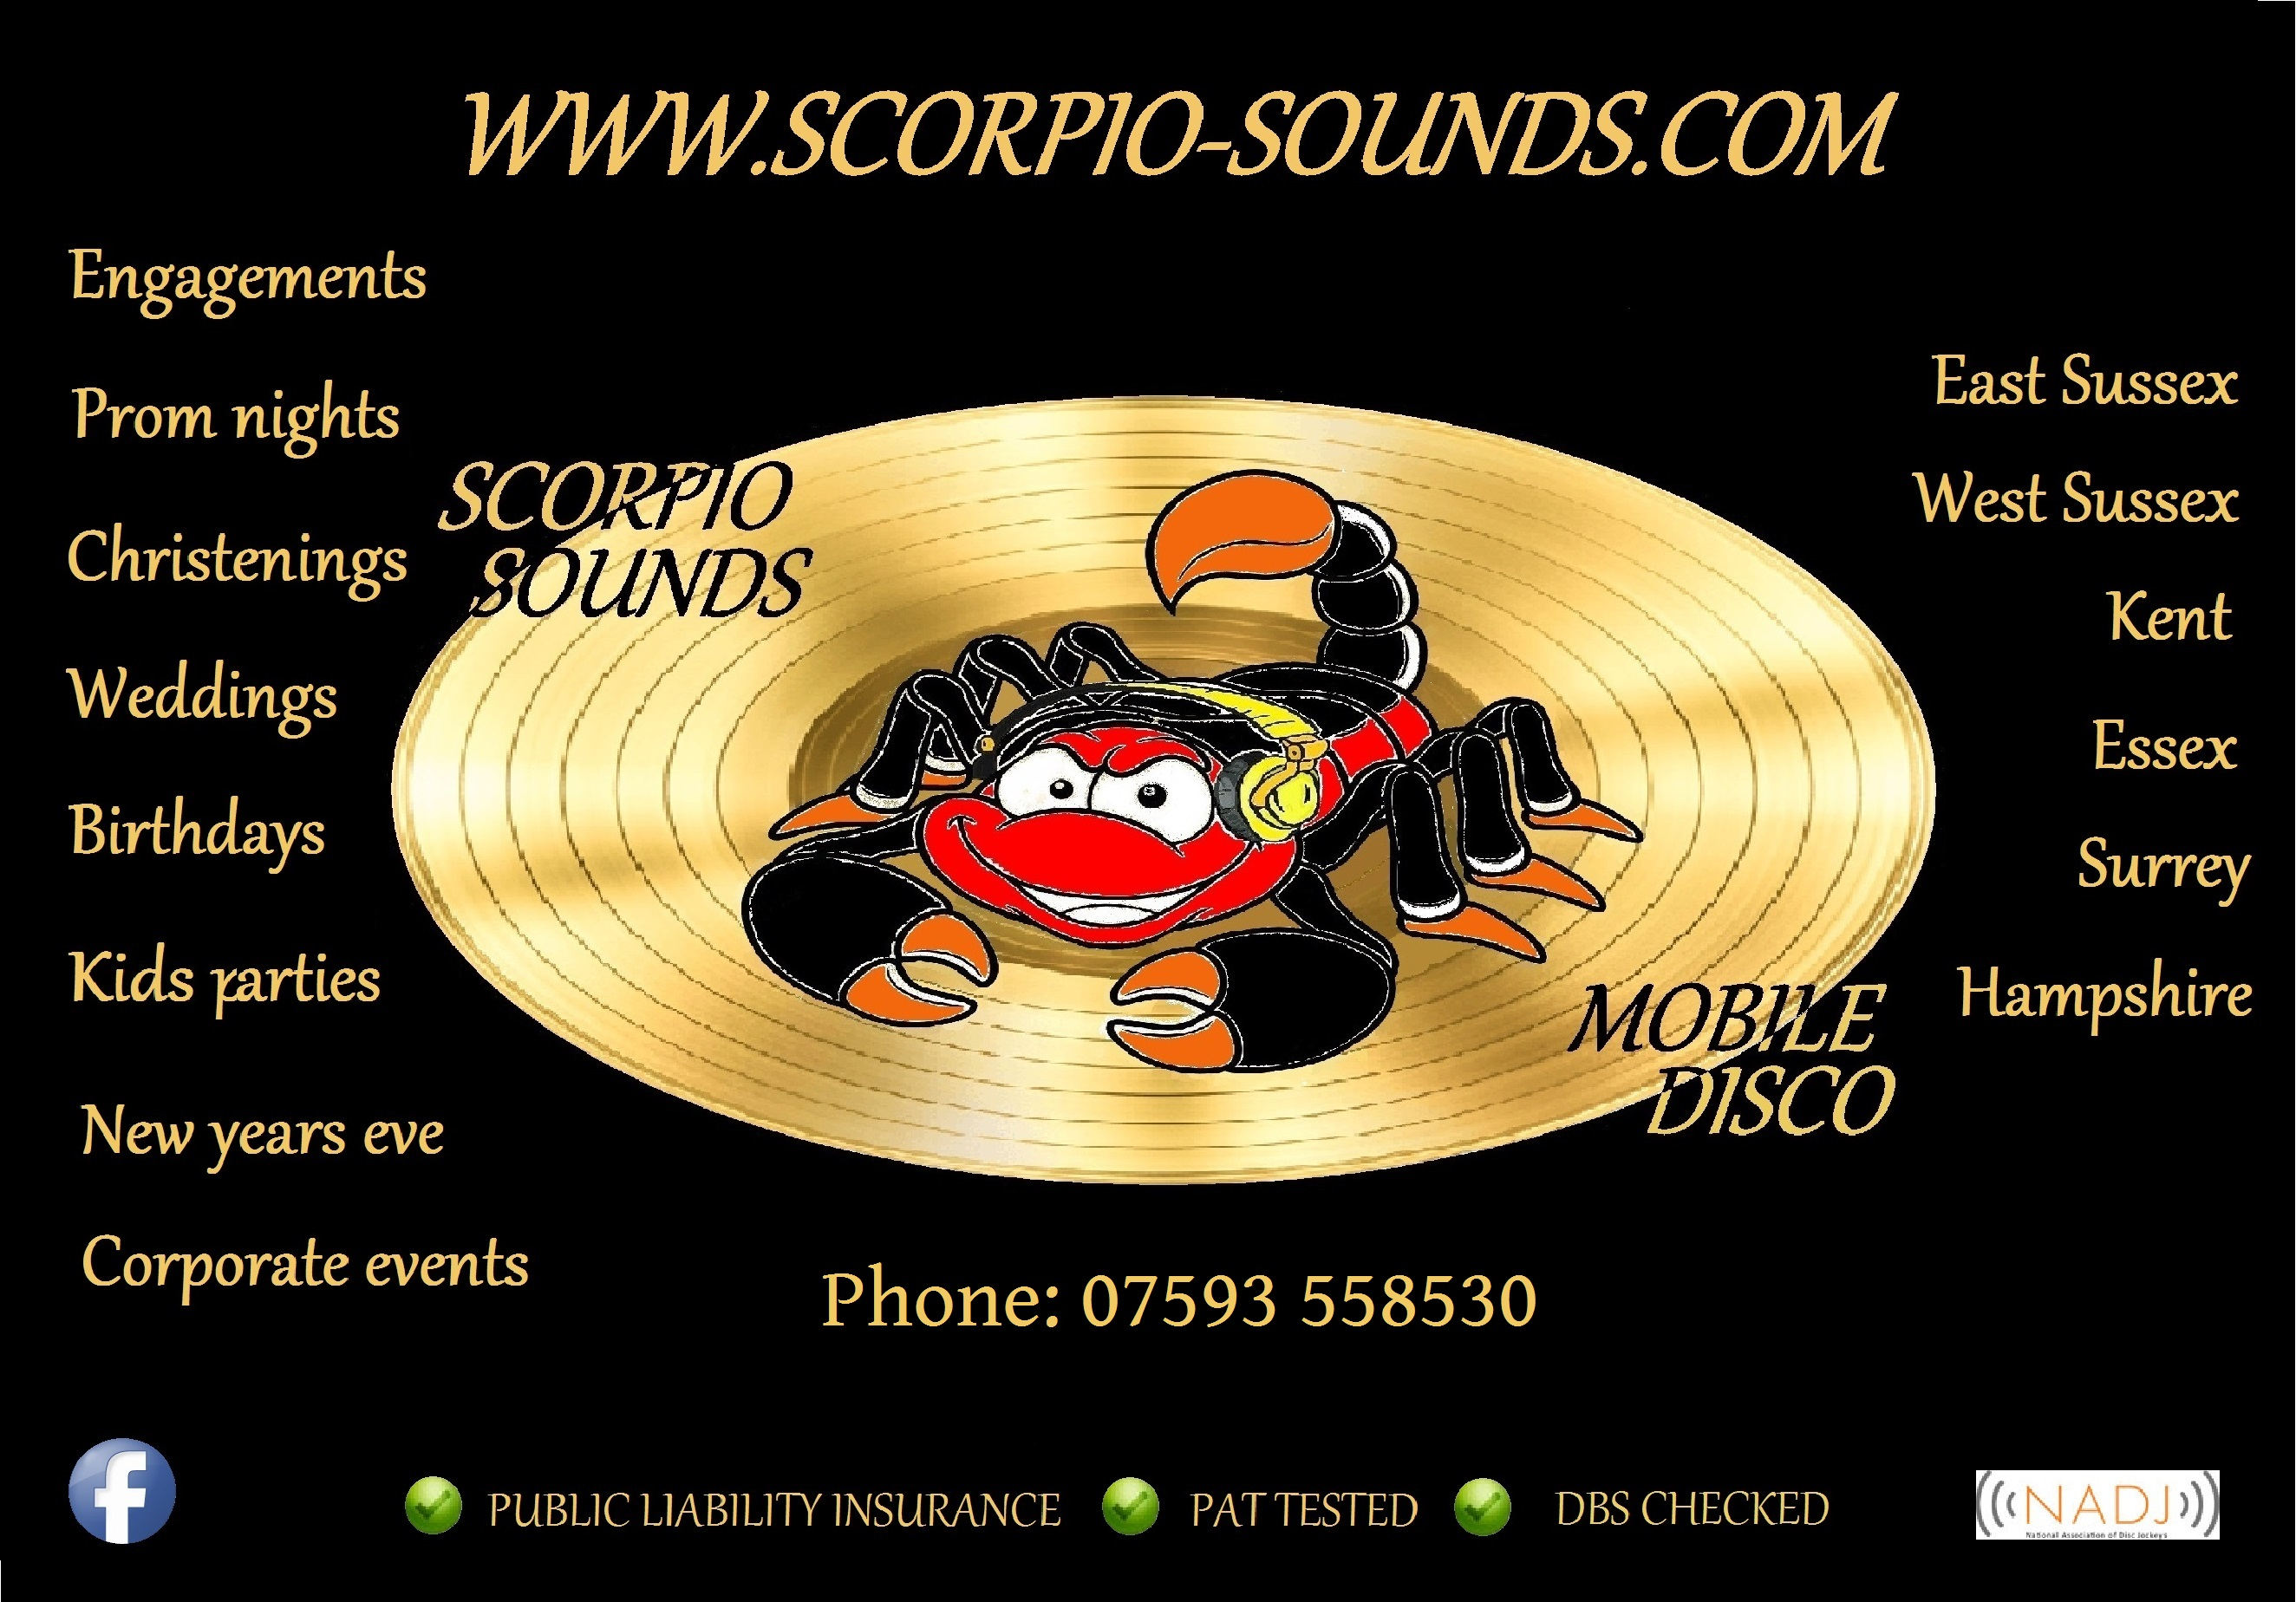 image of Scorpio sounds